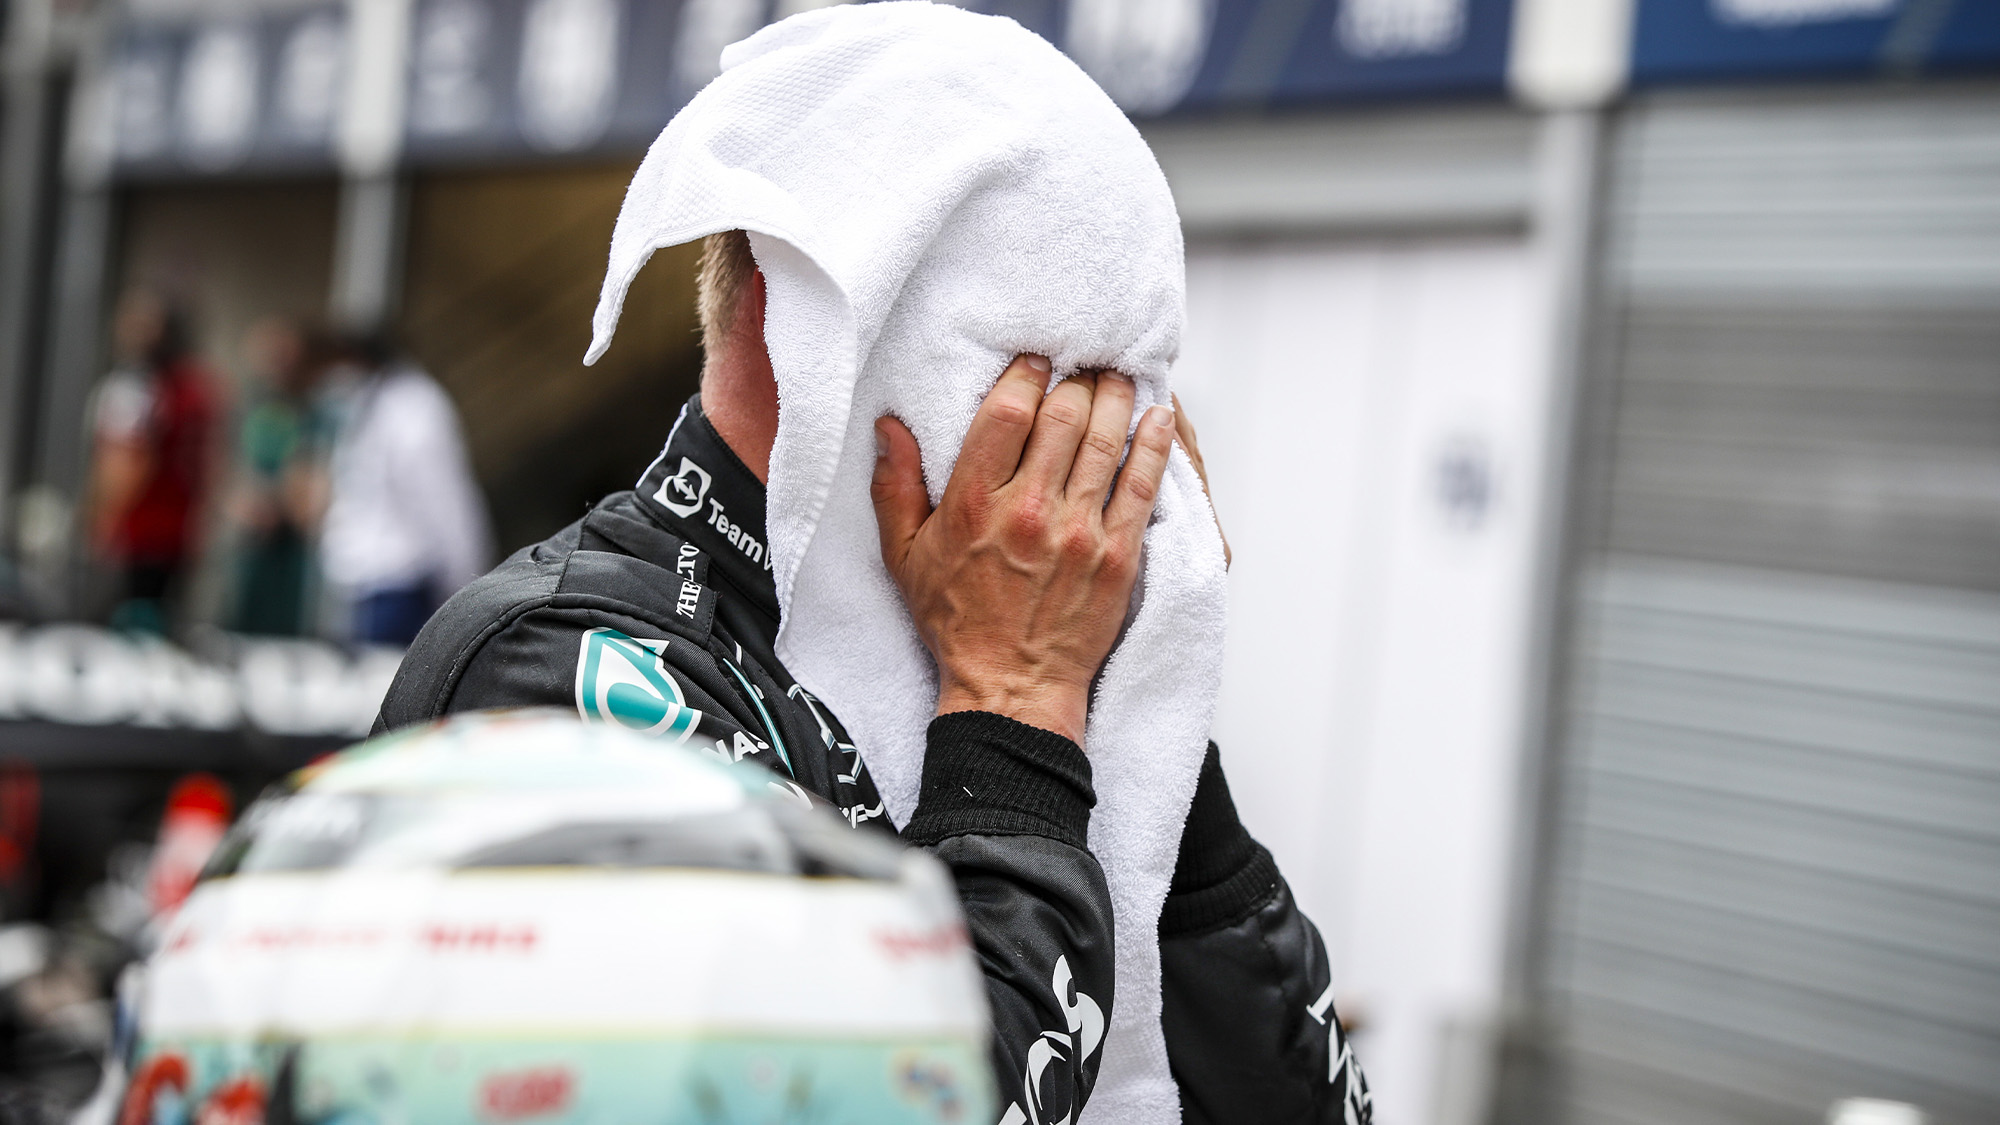 Valtteri Bottas with his face in a towel after 2021 Monaco GP qualifying